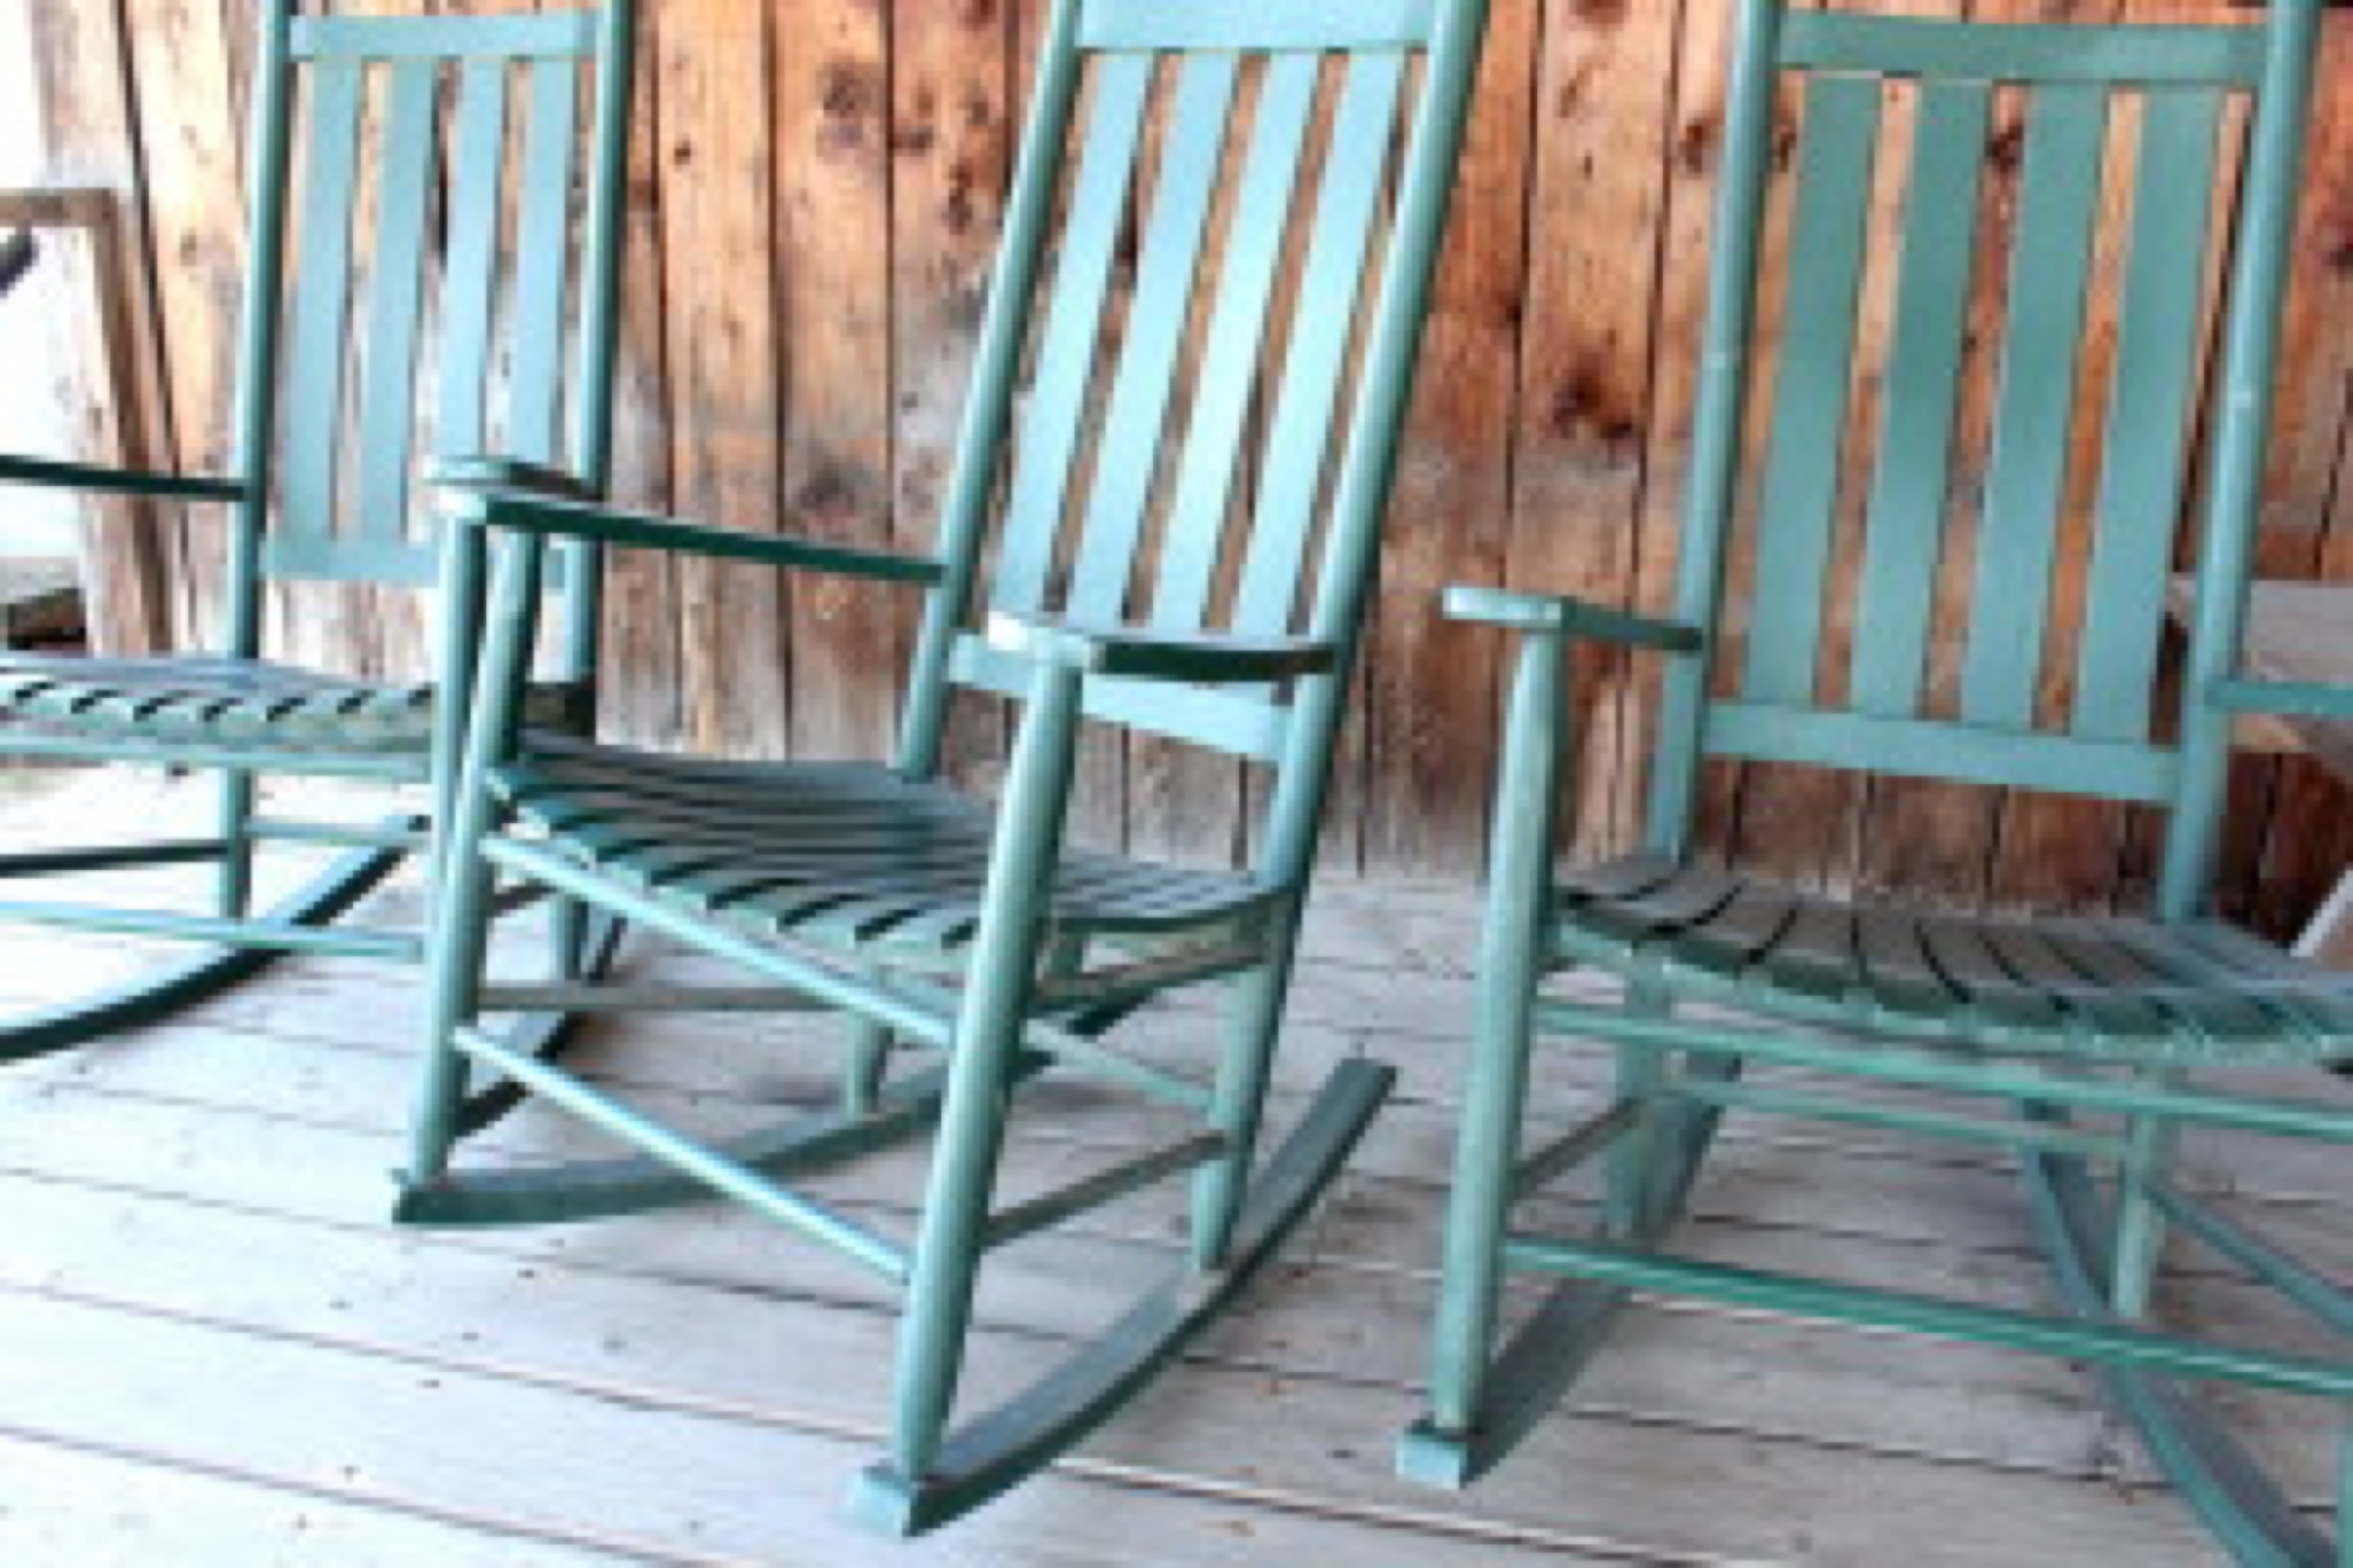 Rocking chairs on an old porch